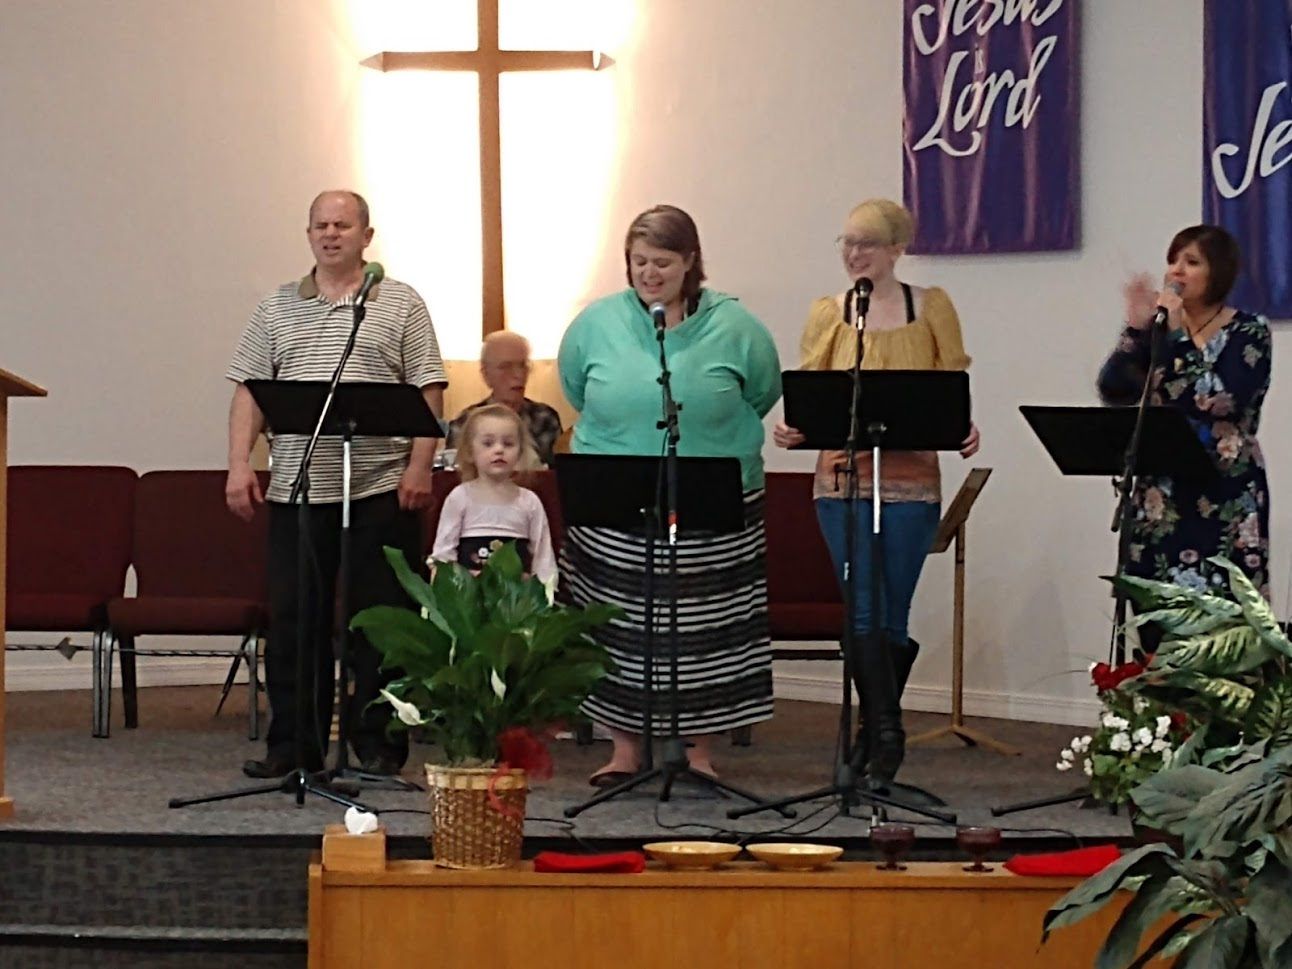 Church Worship Team with Child 20190407jpg.jpg